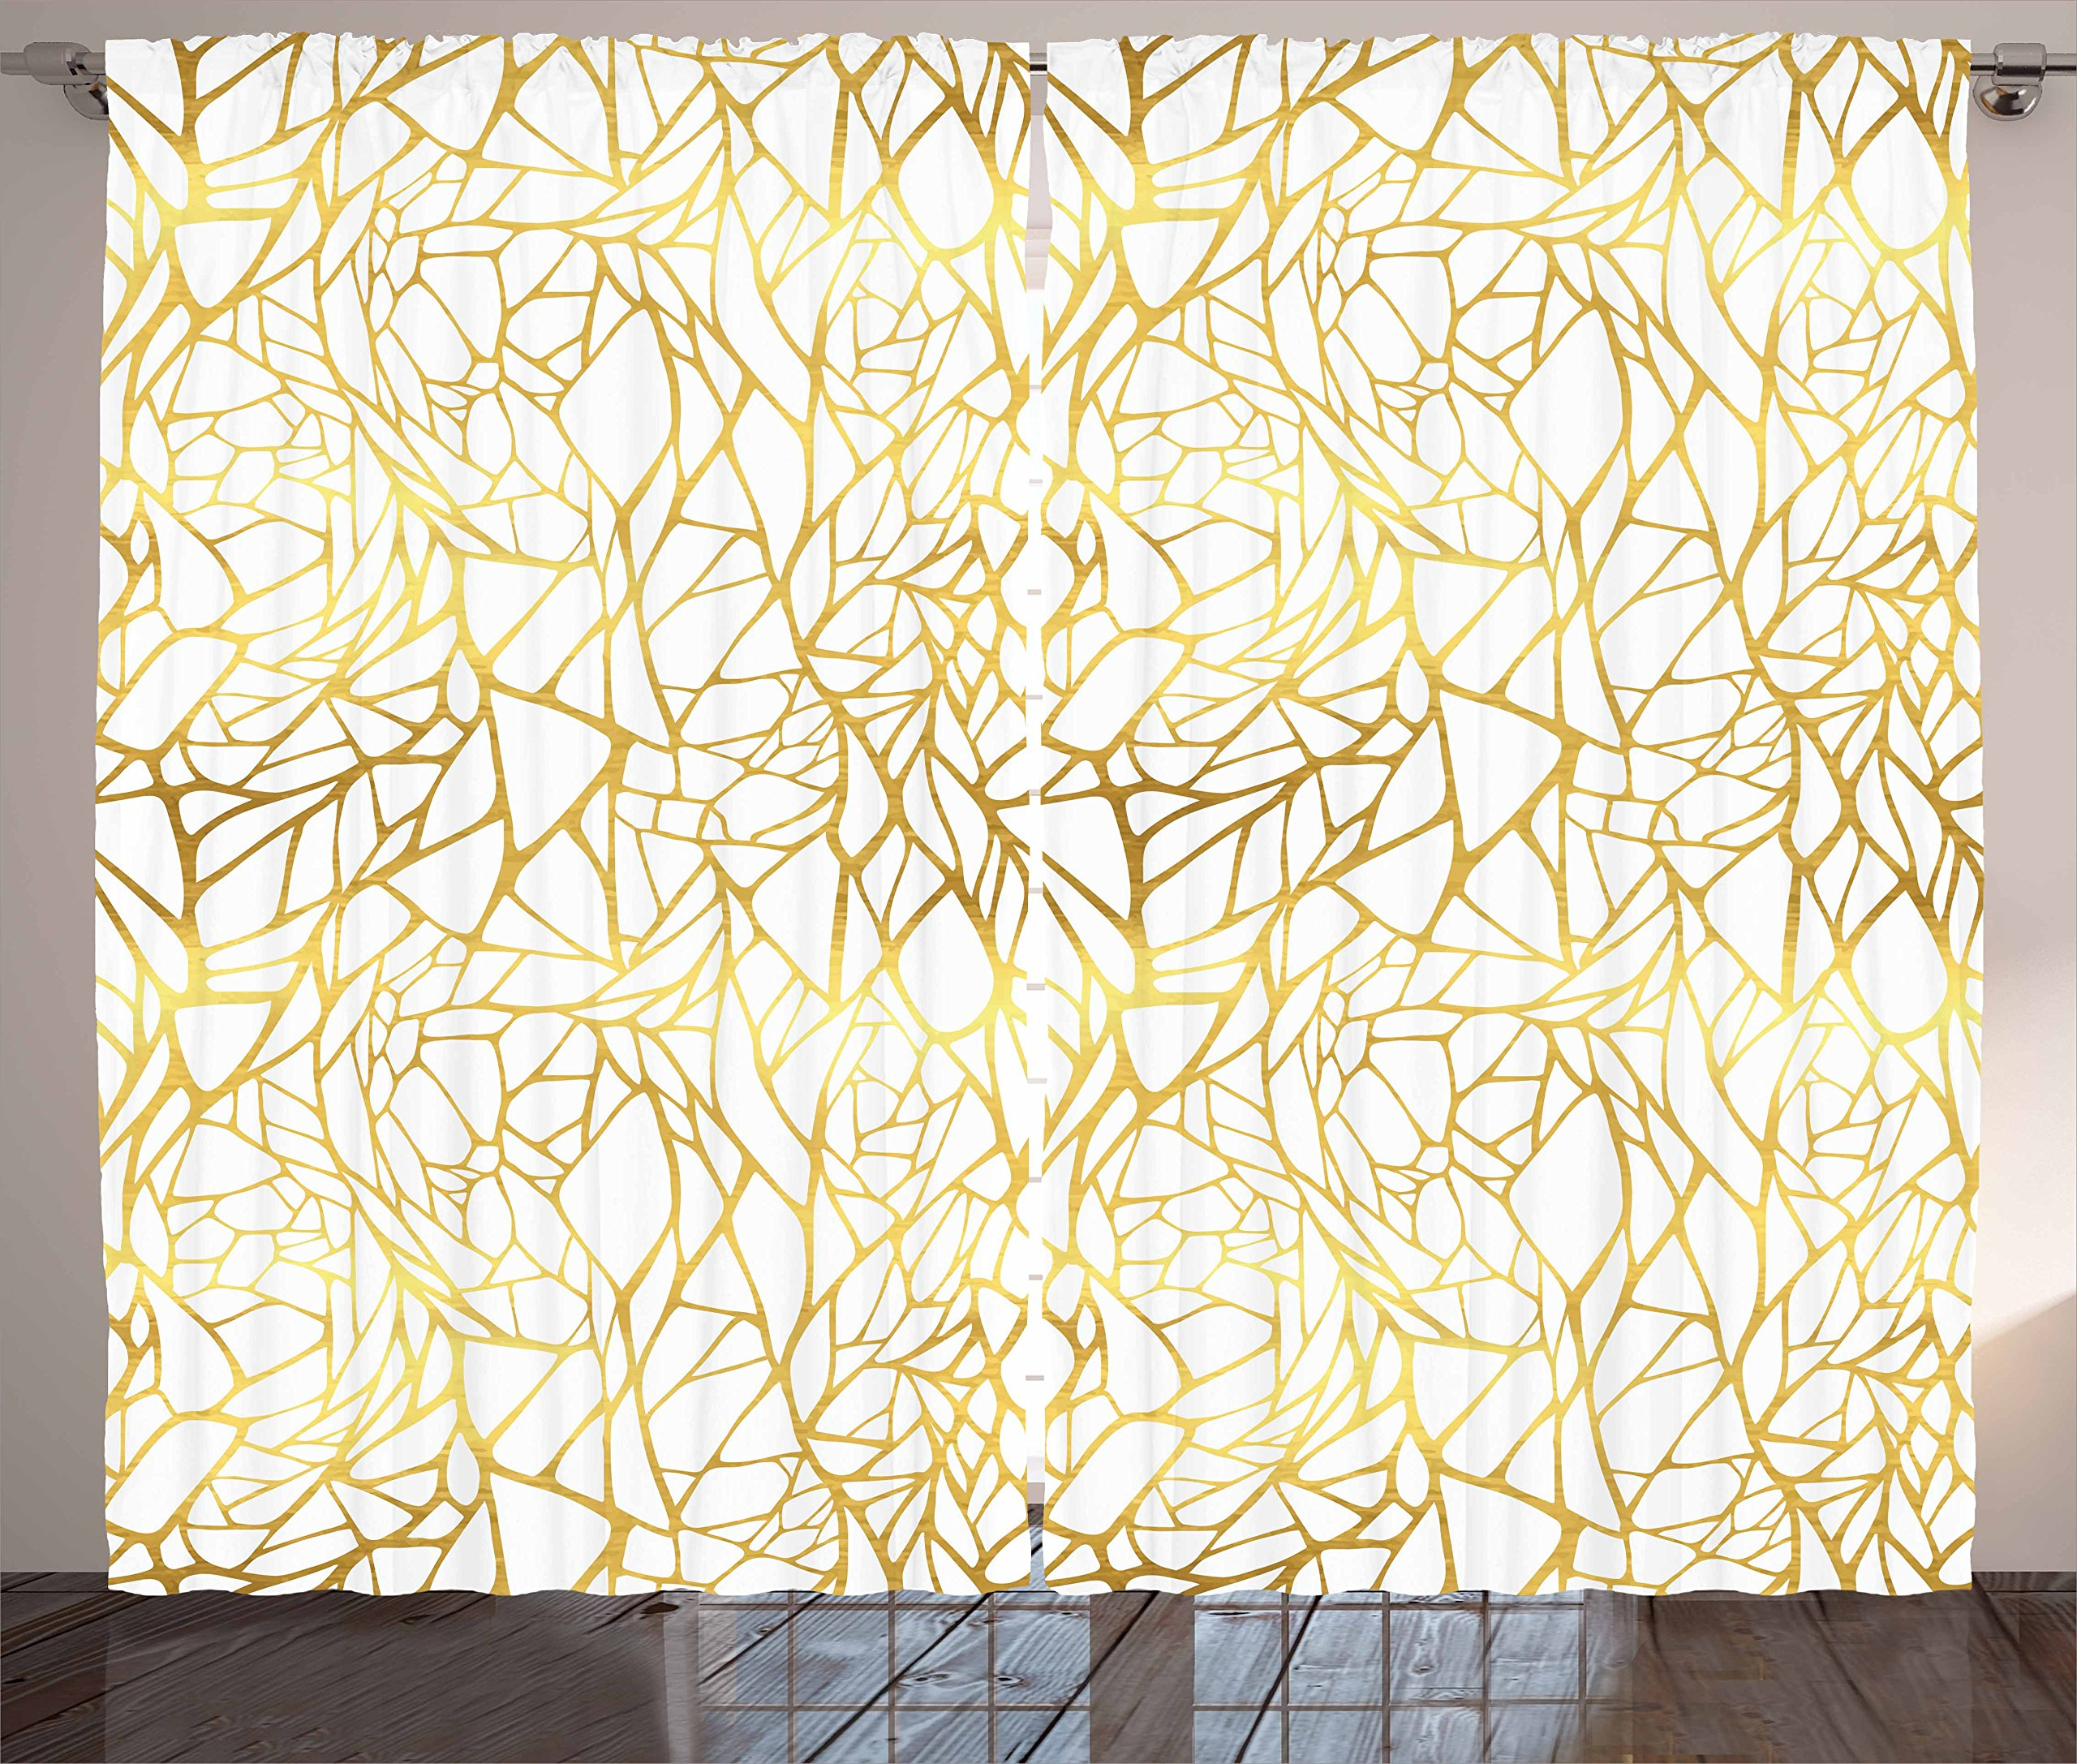 Ambesonne Contemporary Curtains, Abstract Ornament Exotic Animal Pattern Style Feminine Glamor Print, Living Room Bedroom Window Drapes 2 Panel Set, 108 W X 63 L inches, Gold Yellow and White